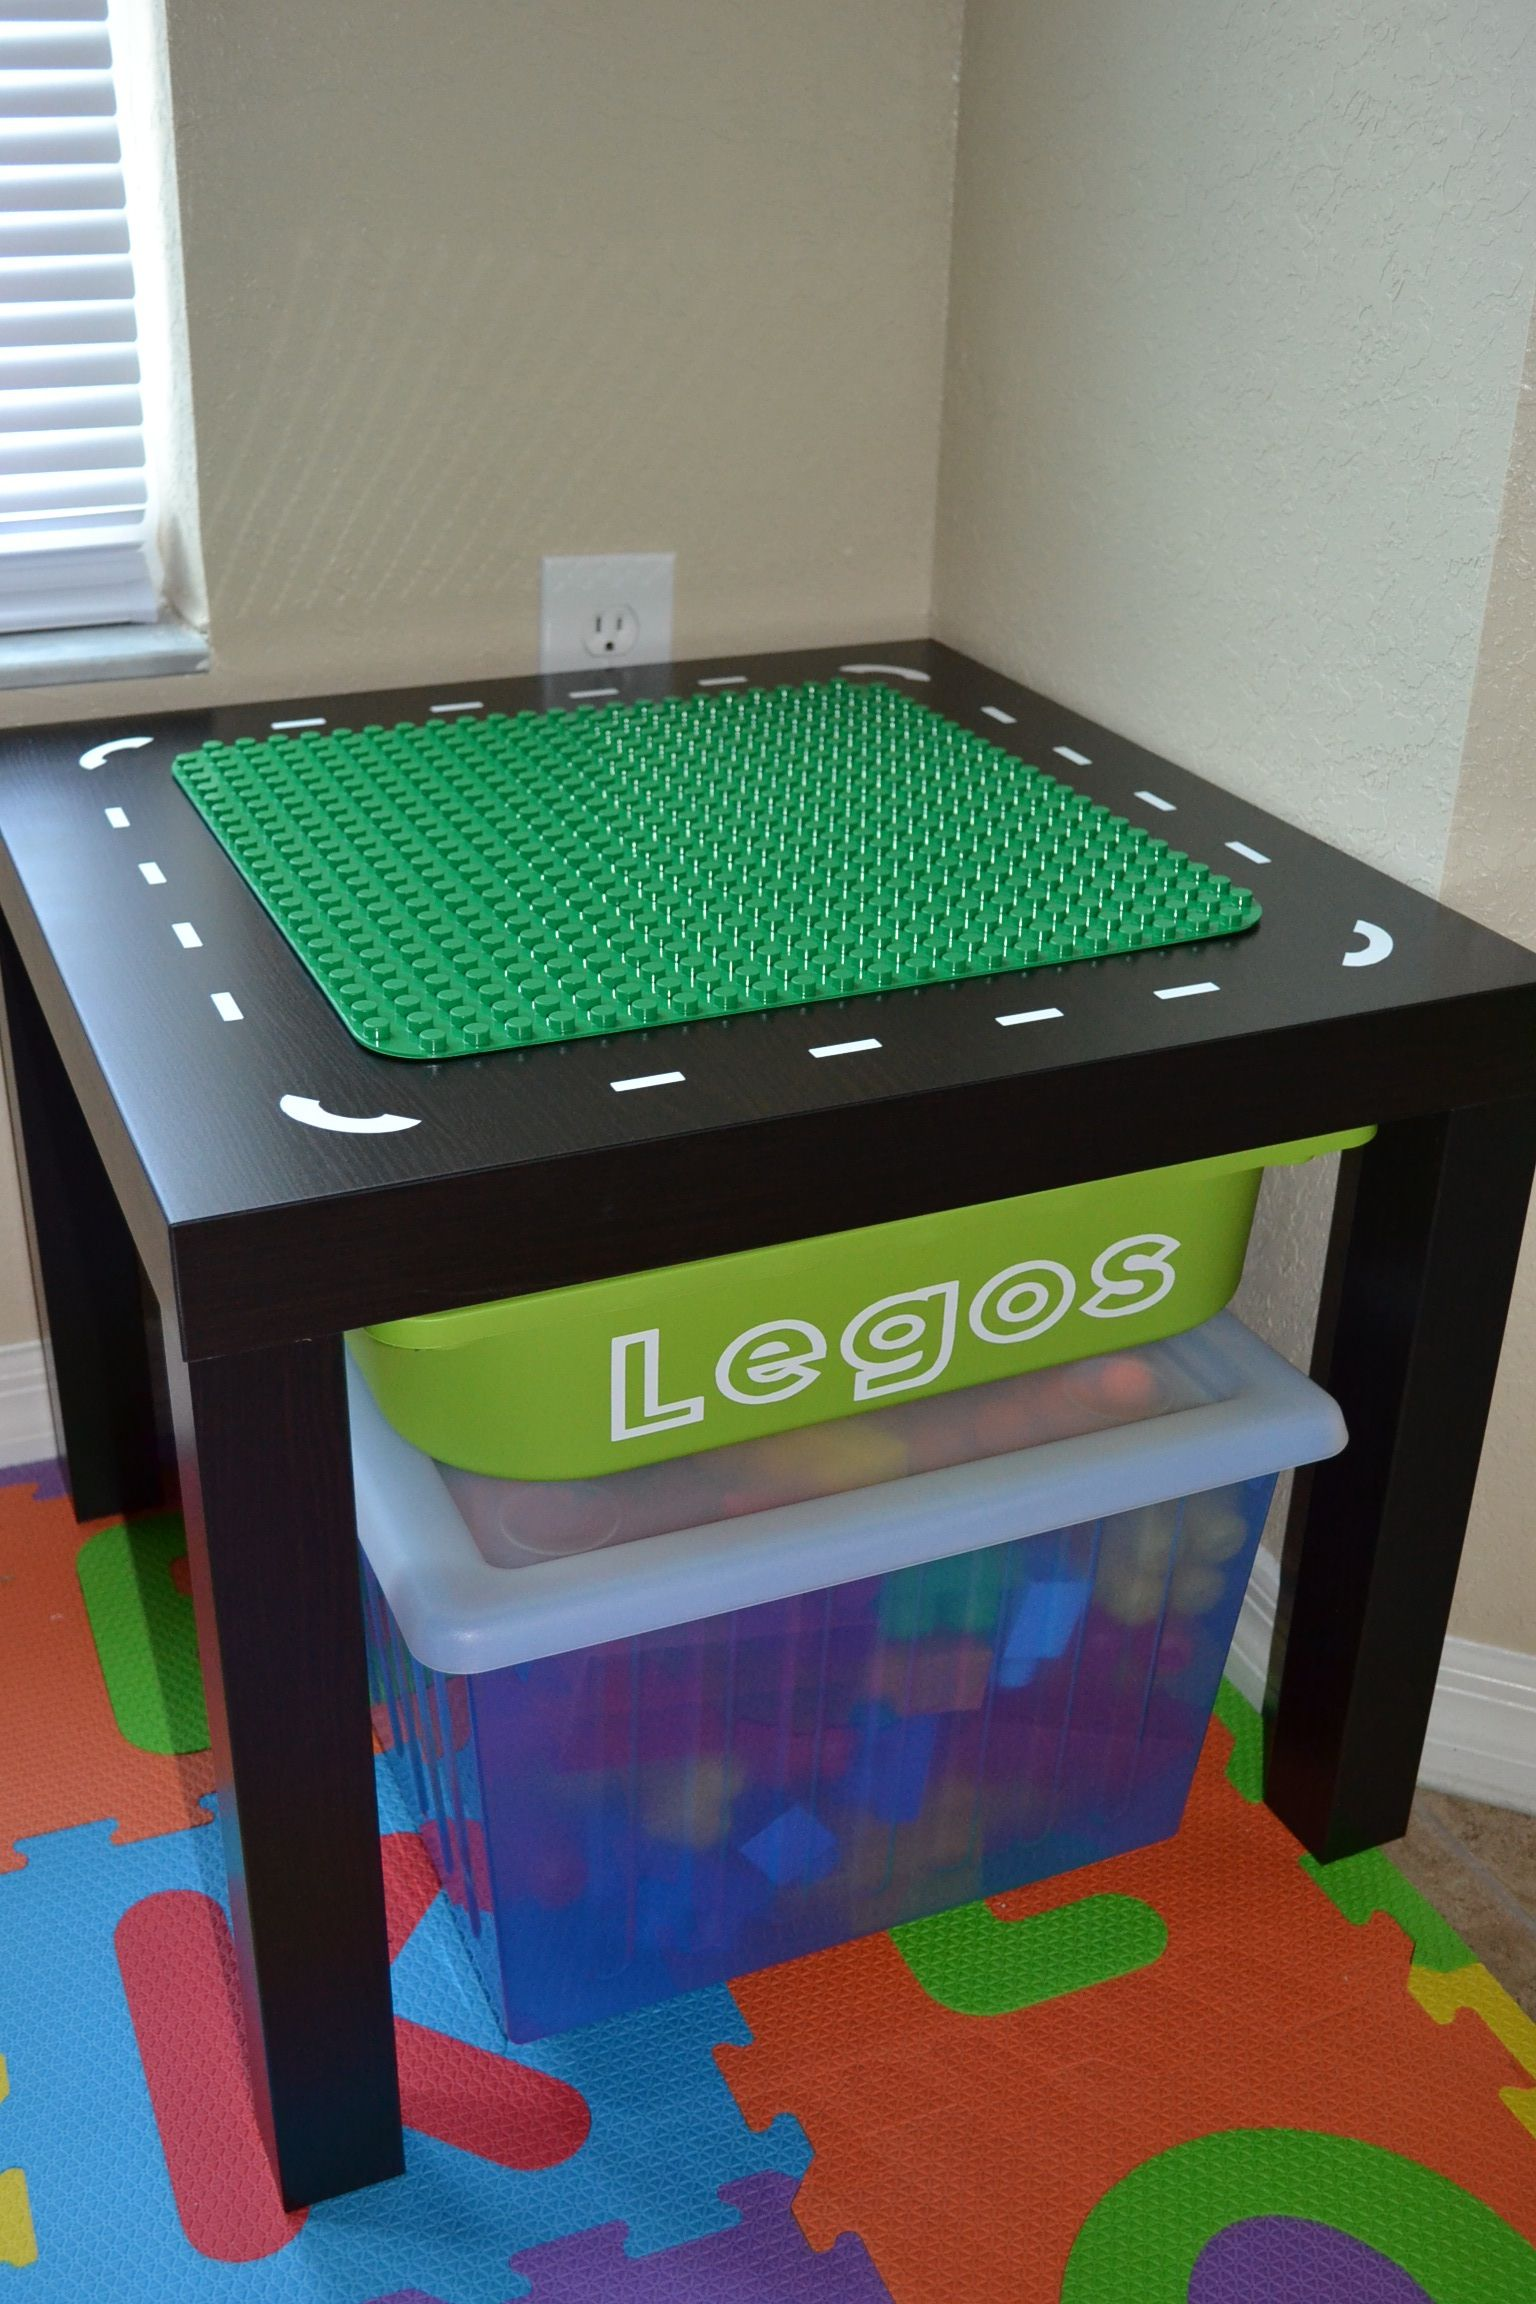 Ikea Inspired Lego Table Use Velcro To Hold The Duplo Mat Down So It Can Be Changed Out When